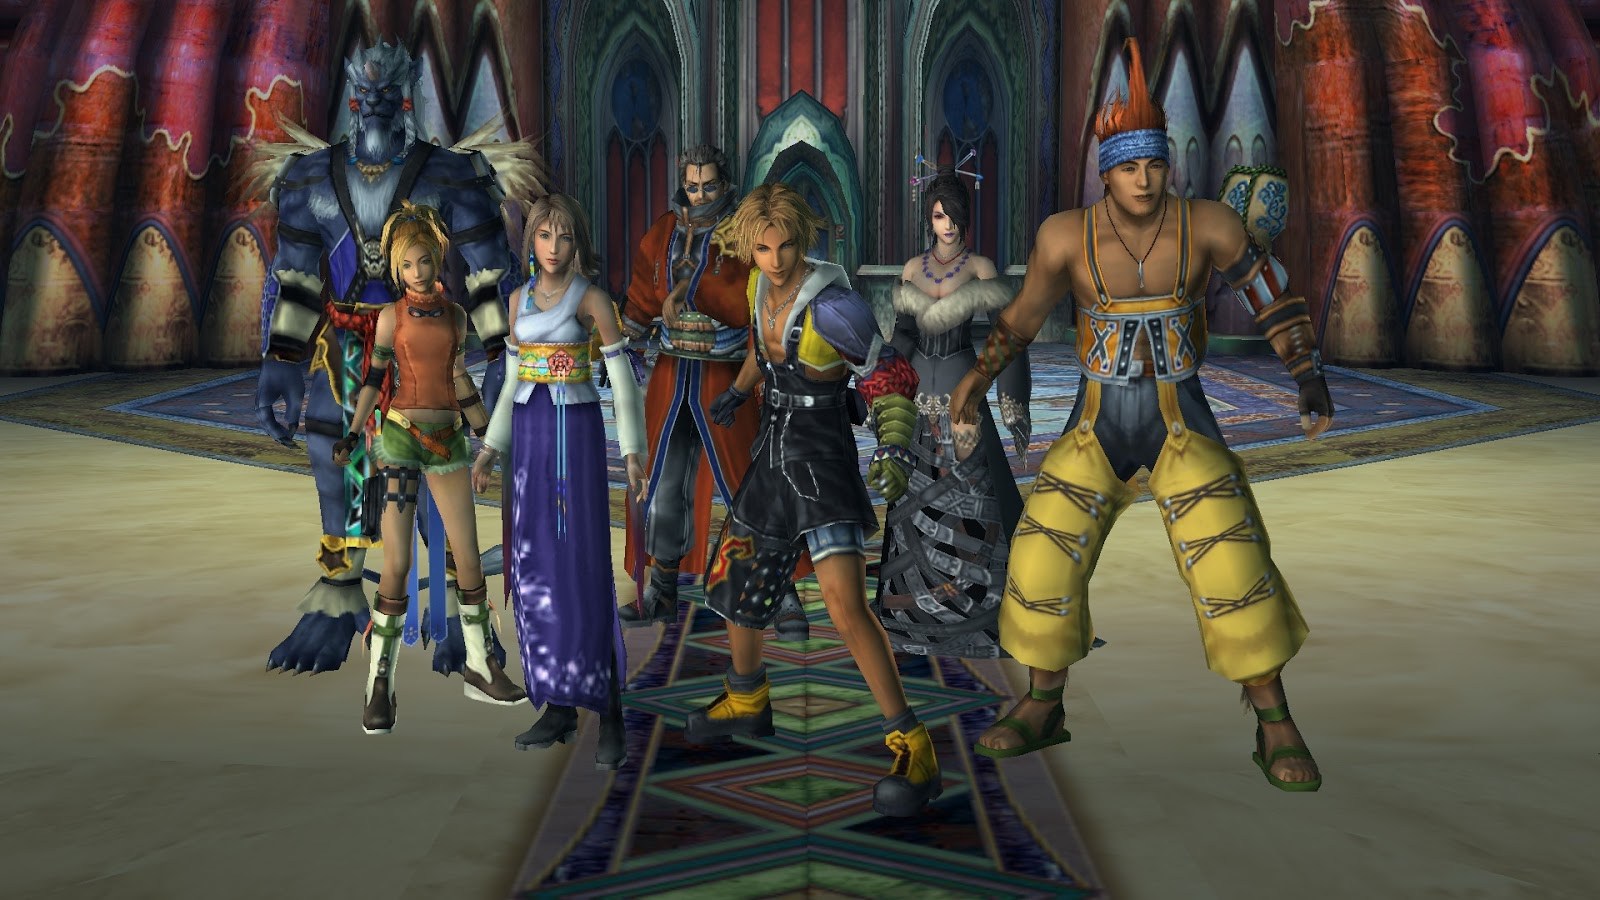 Final Fantasy X scenario writer wants to see Final Fantasy X-3